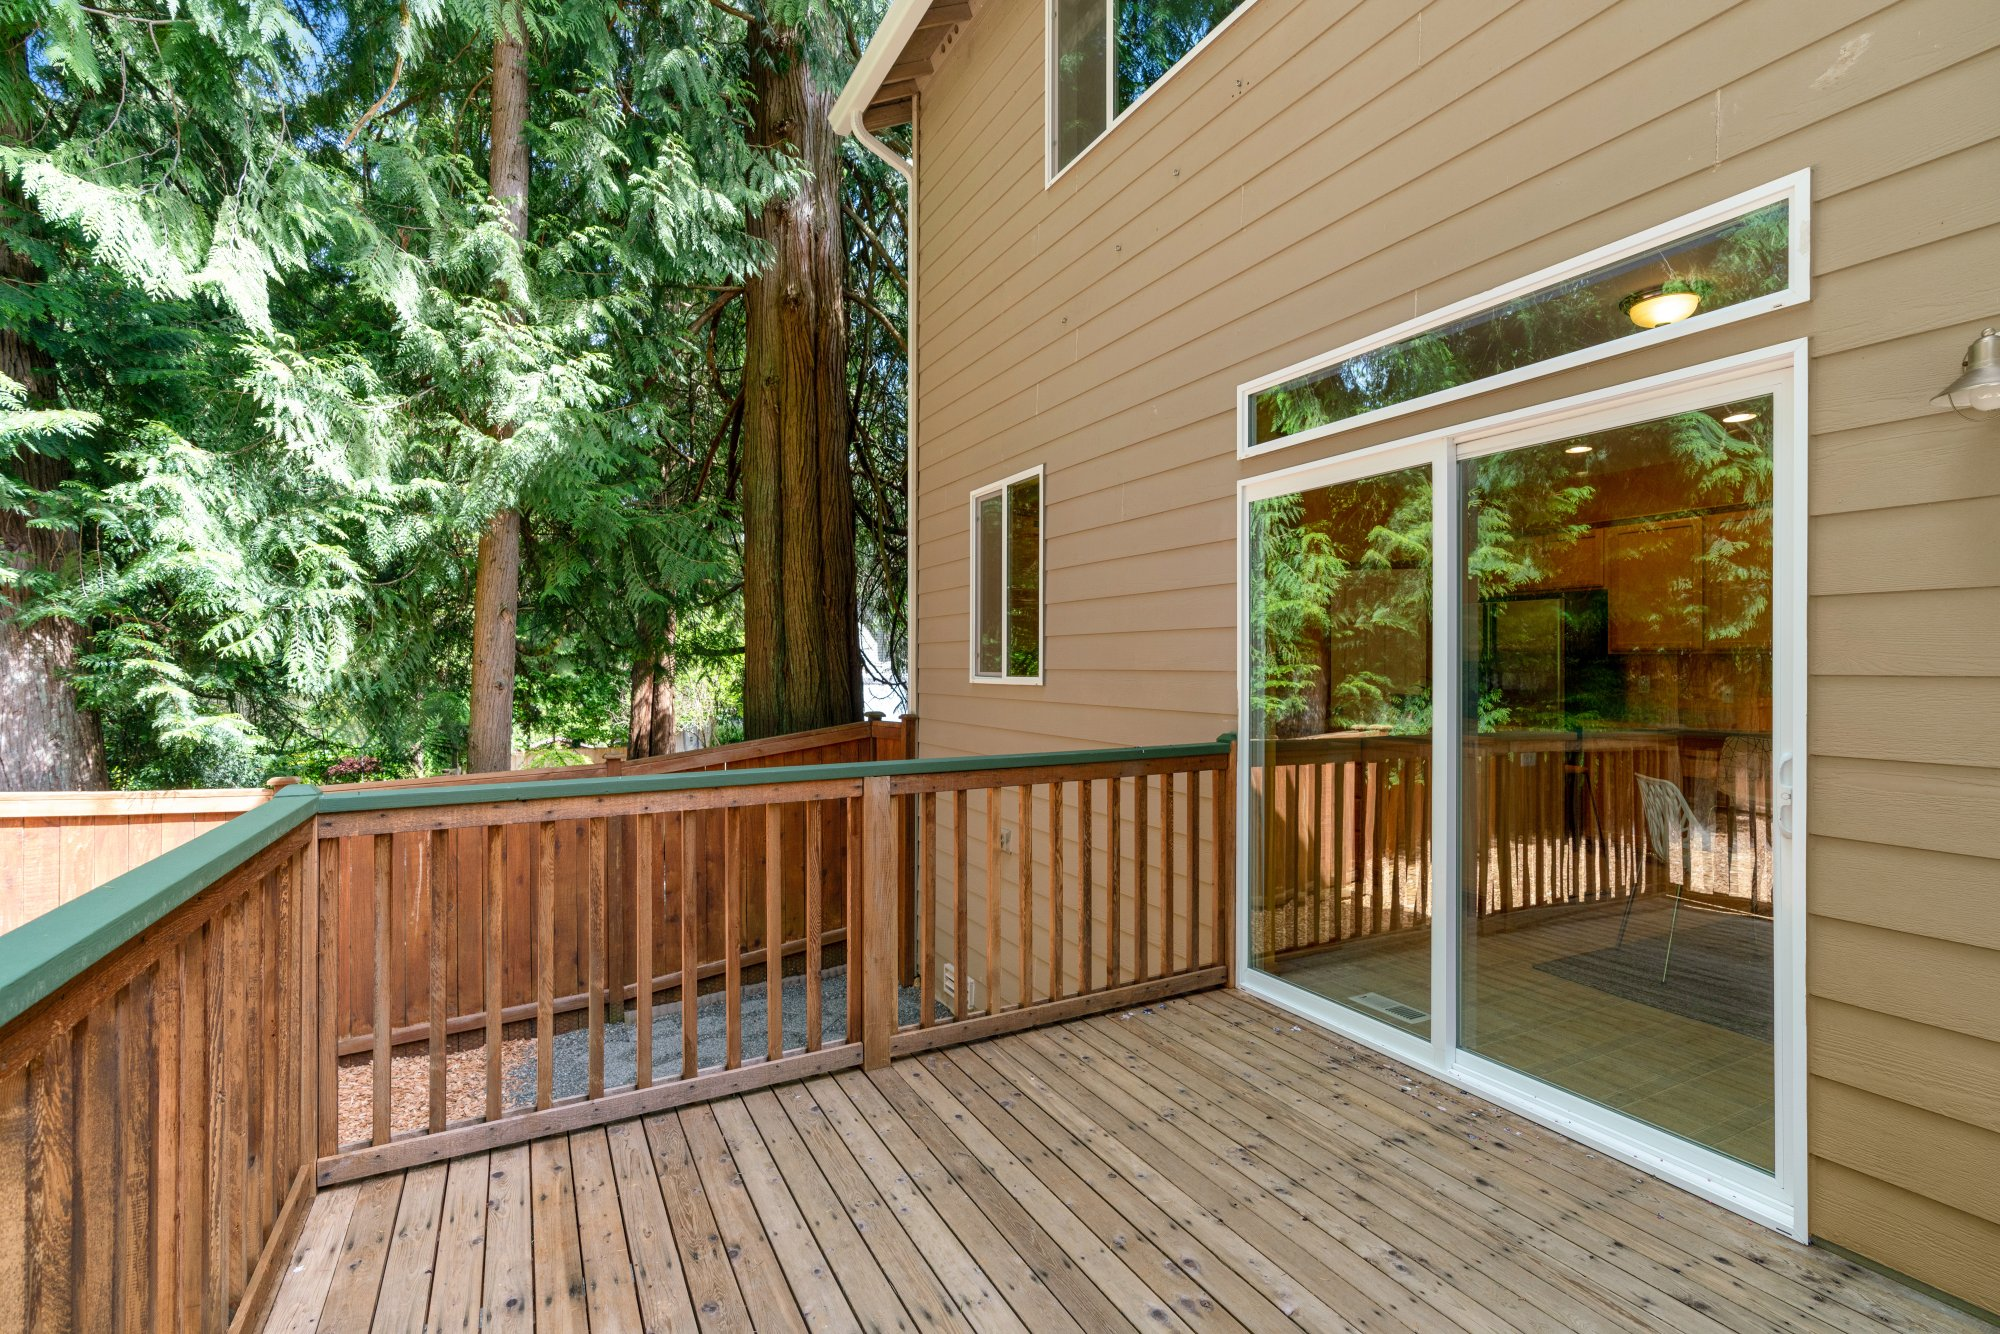 016-2946Northeast178thStreet-LakeForestPark-WA-98155-SMALL